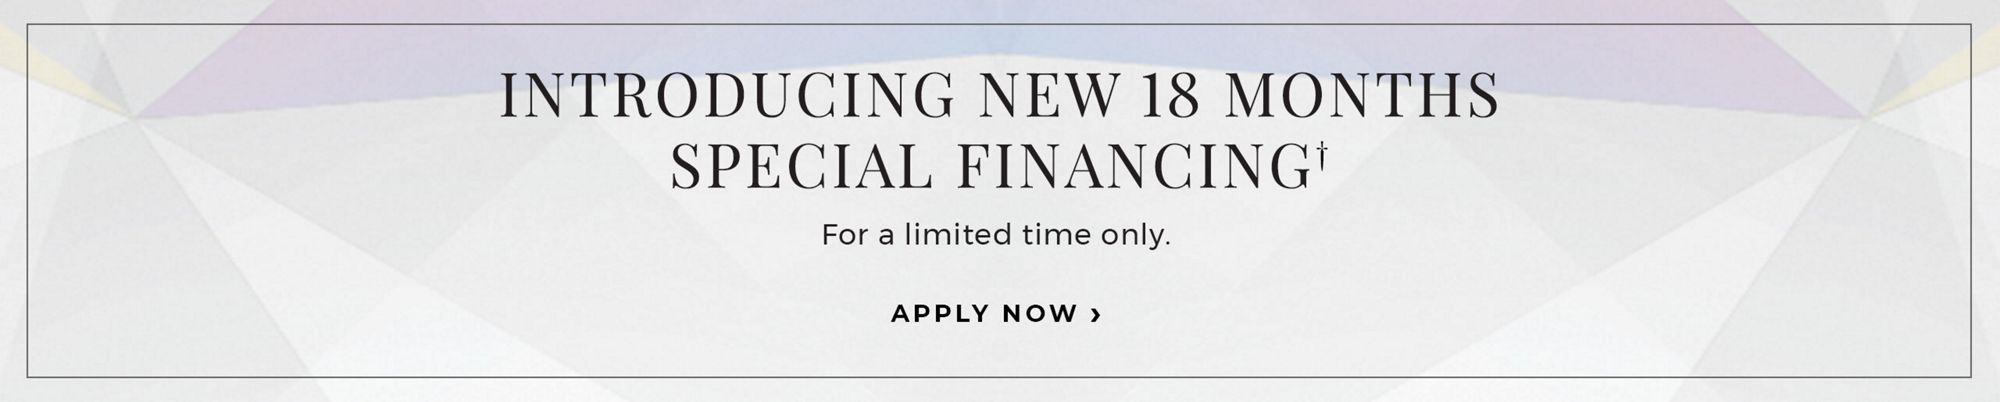 Special 18 Month Financing with the Shane Co Credit Card